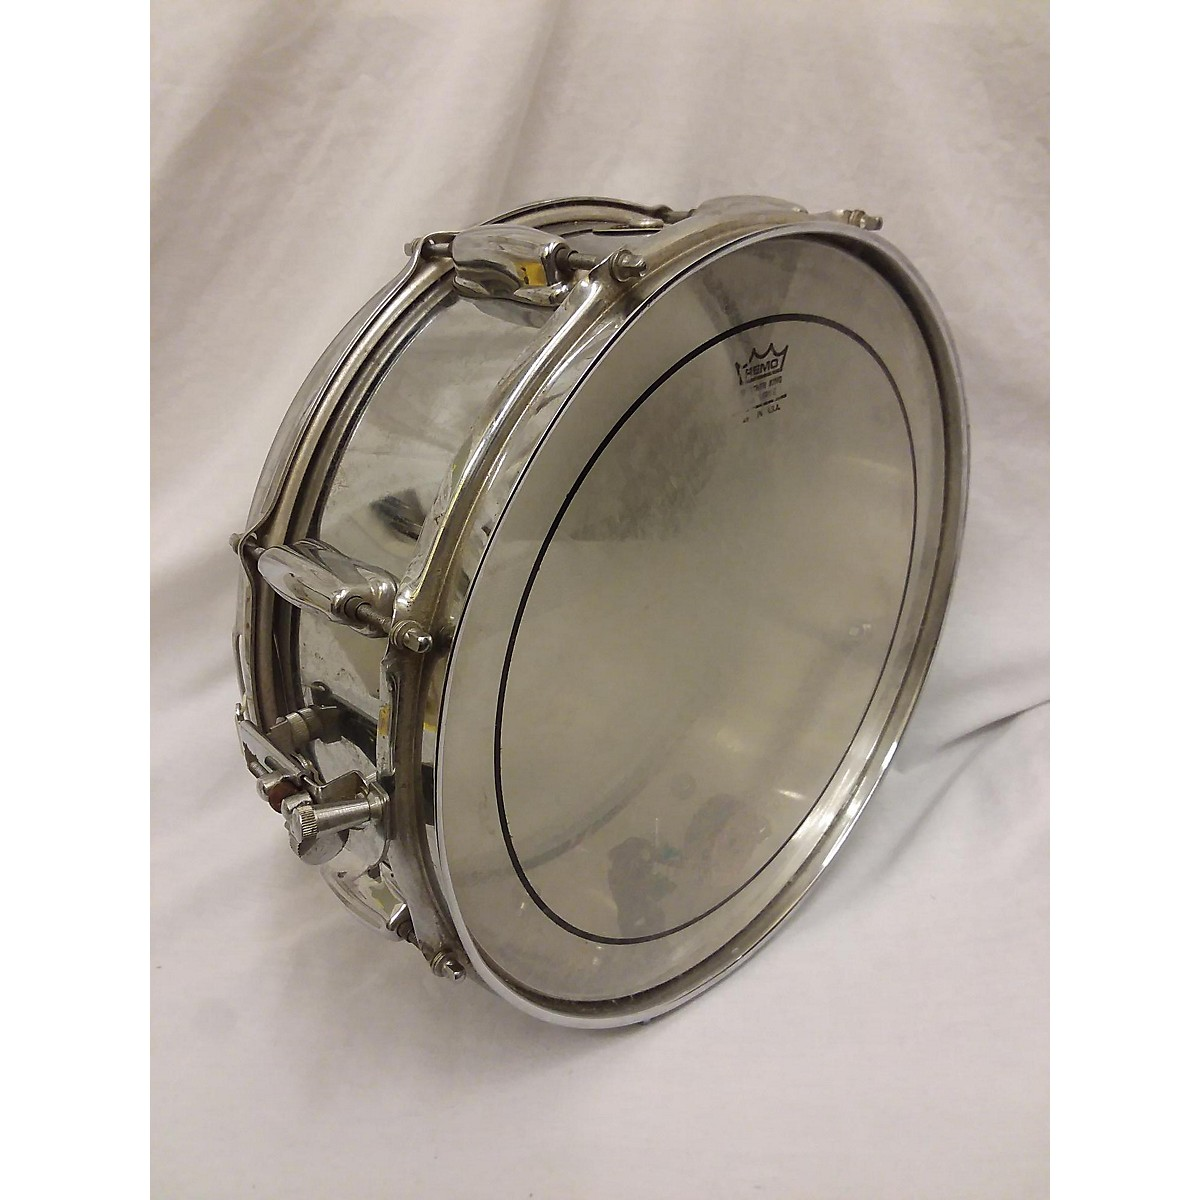 Slingerland 1960s 5X14 Chrome Over Brass Snare Drum